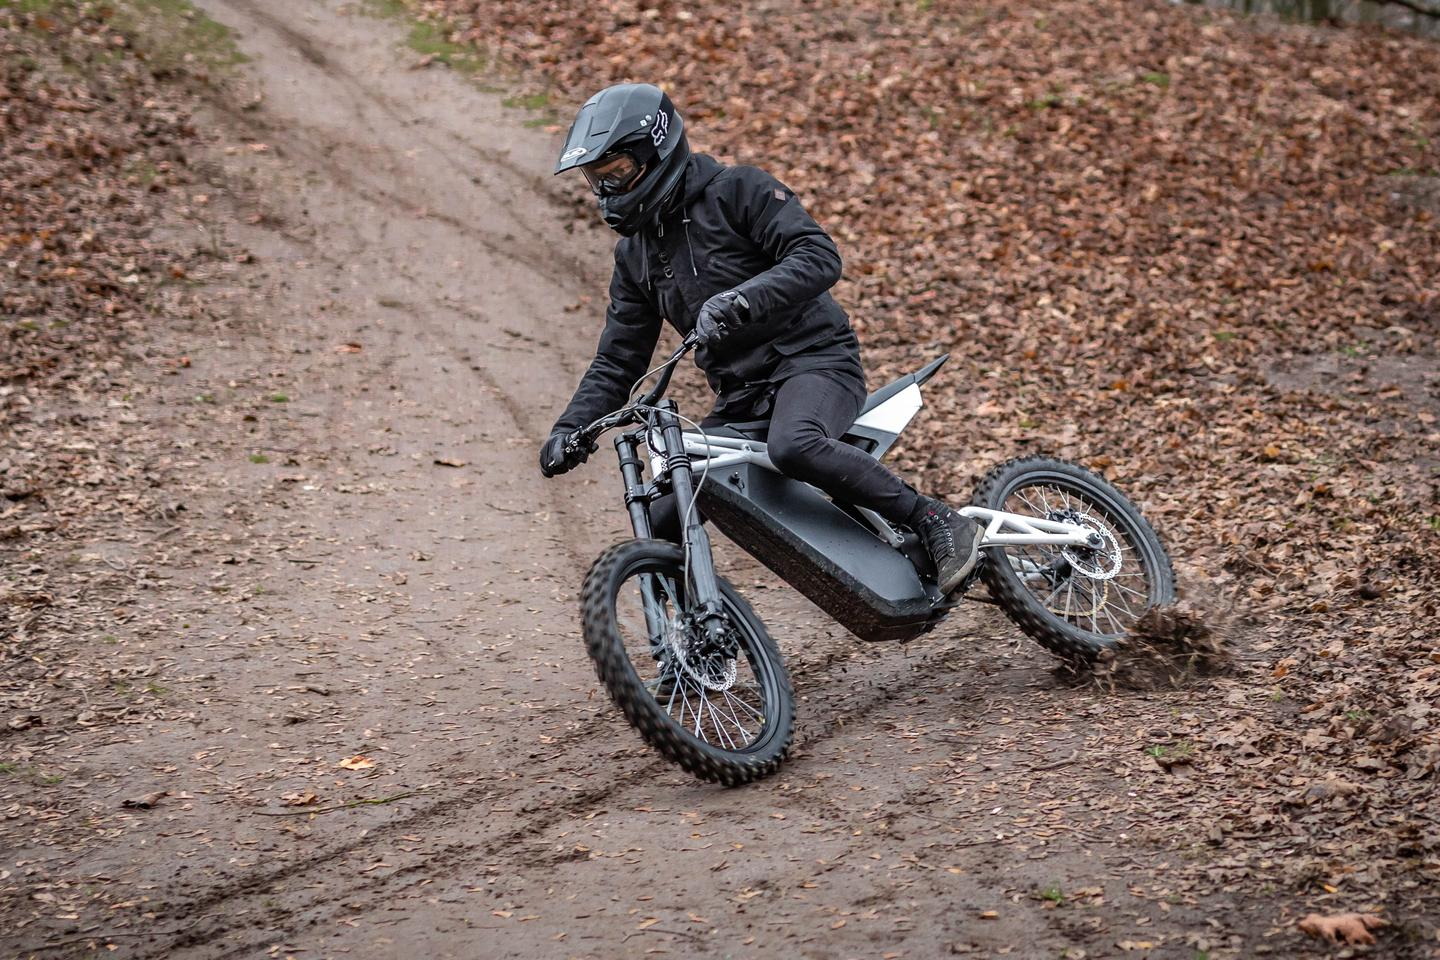 At just 60kg, this thing is half the weight of many dirtbikes